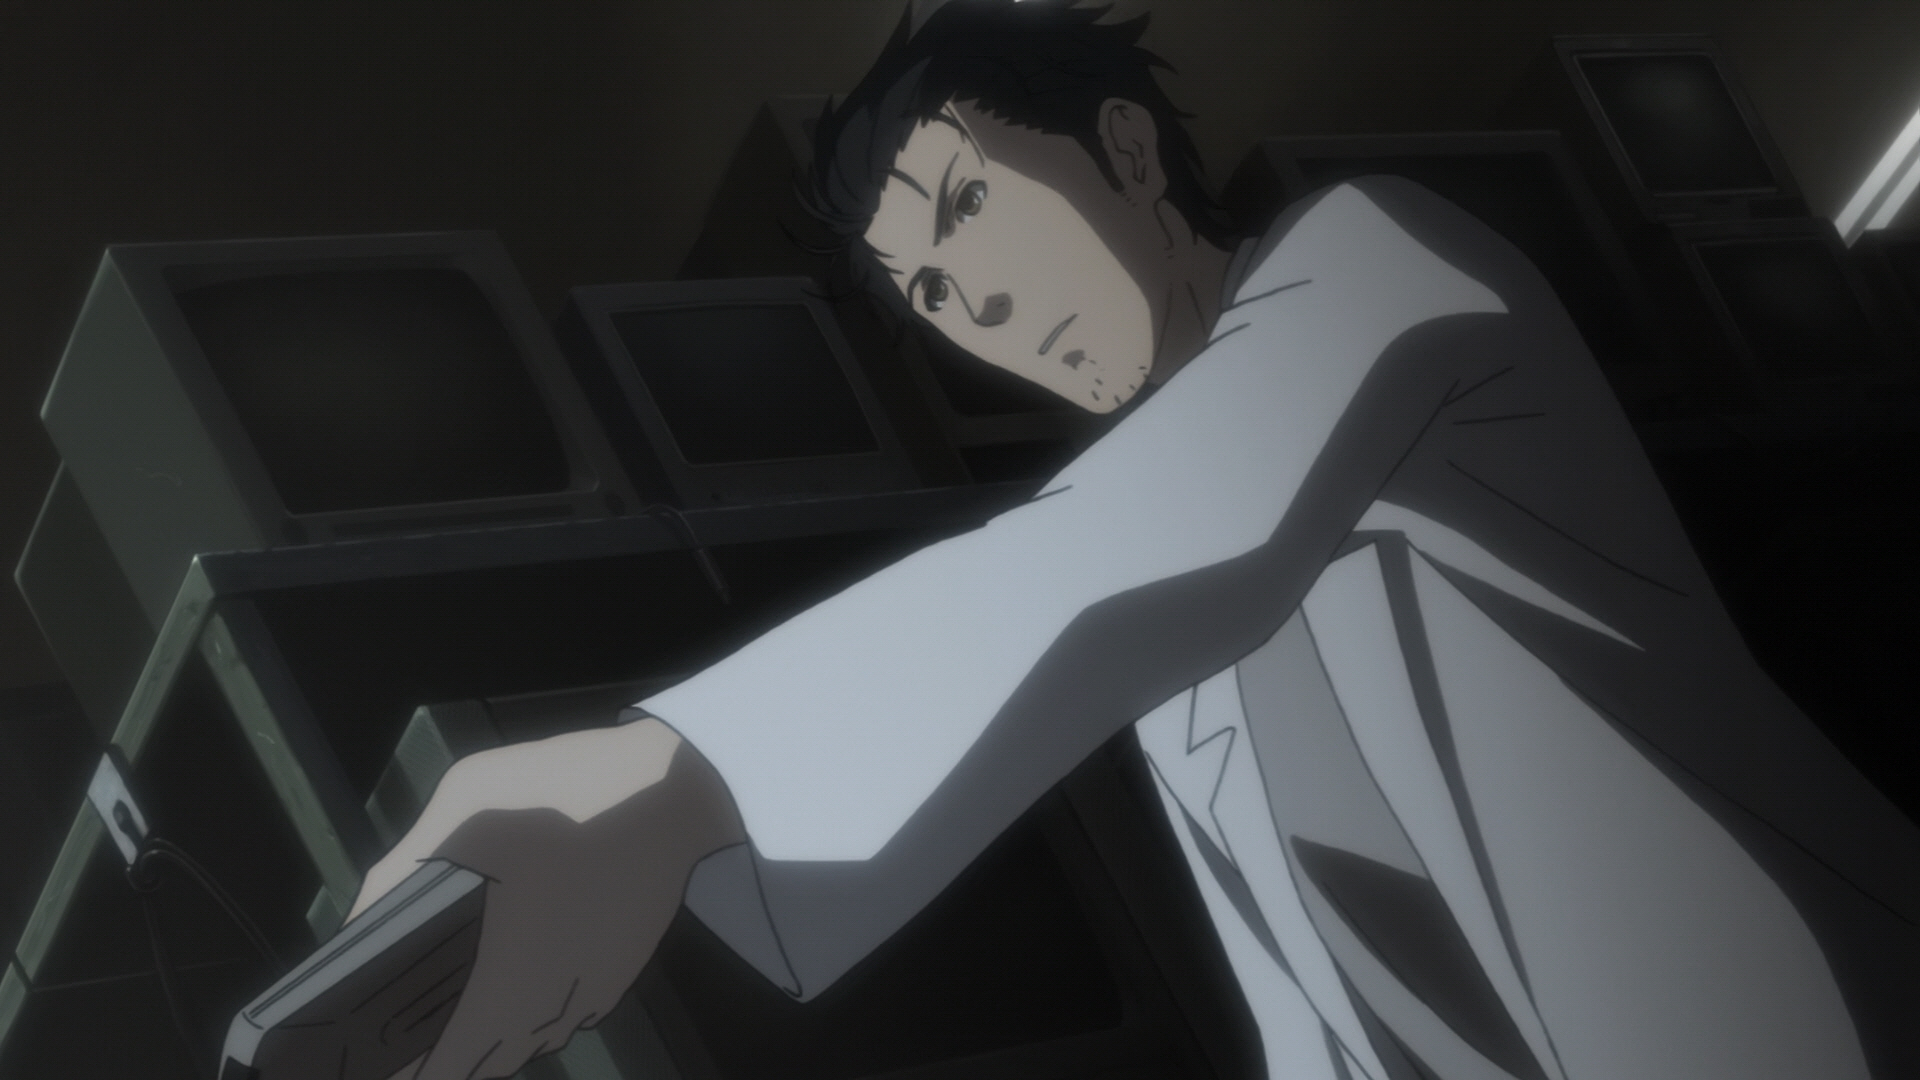 Steins Gate Episode 11 Dogma in Event Horizon 01